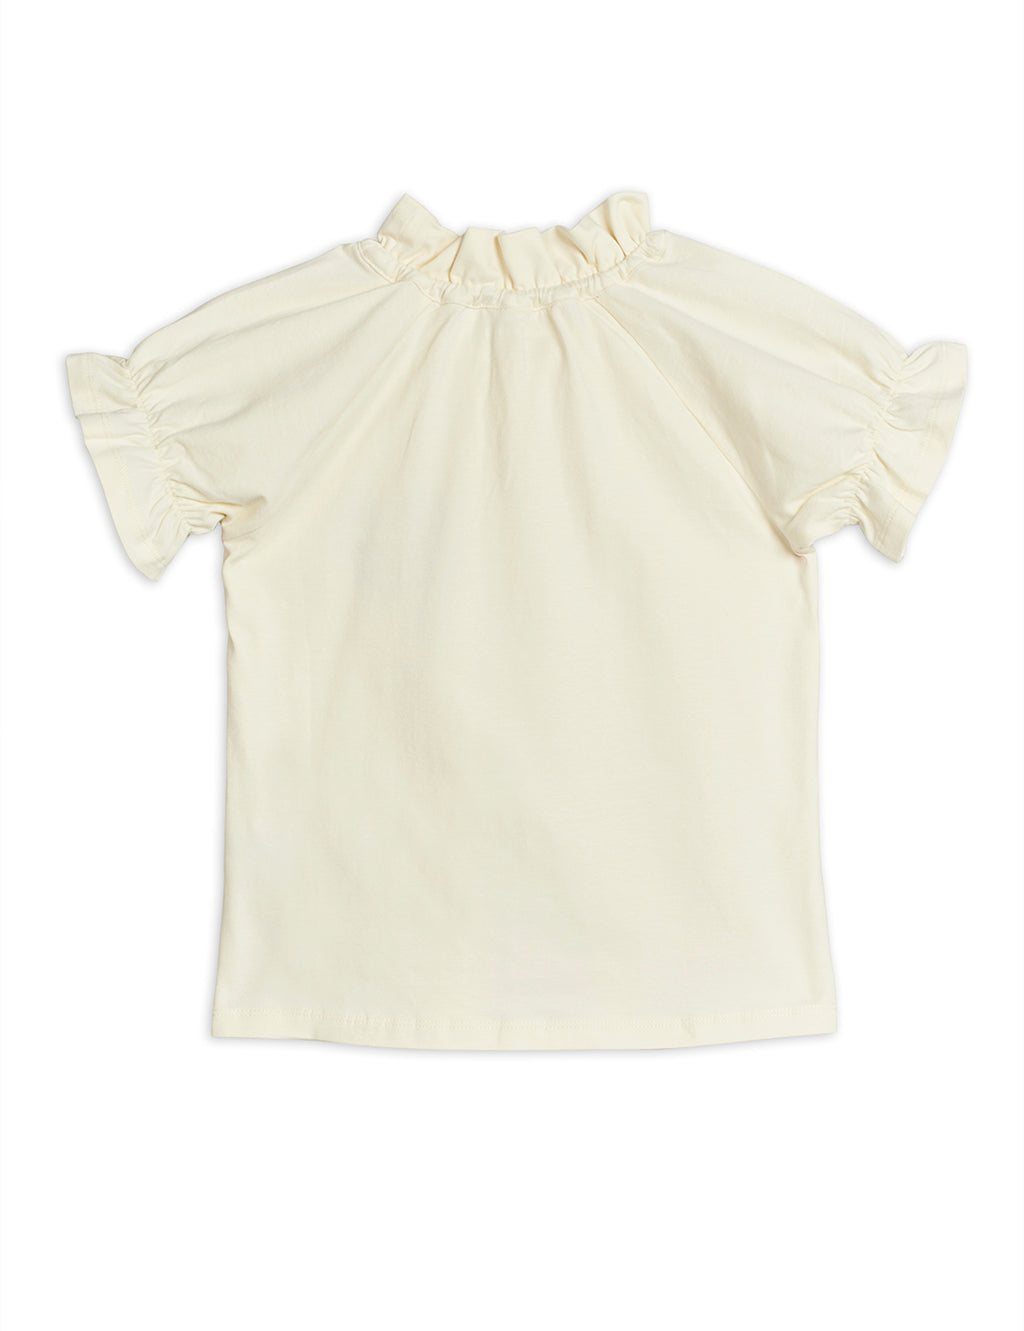 Ivory Horseshoe Cotton Blouse